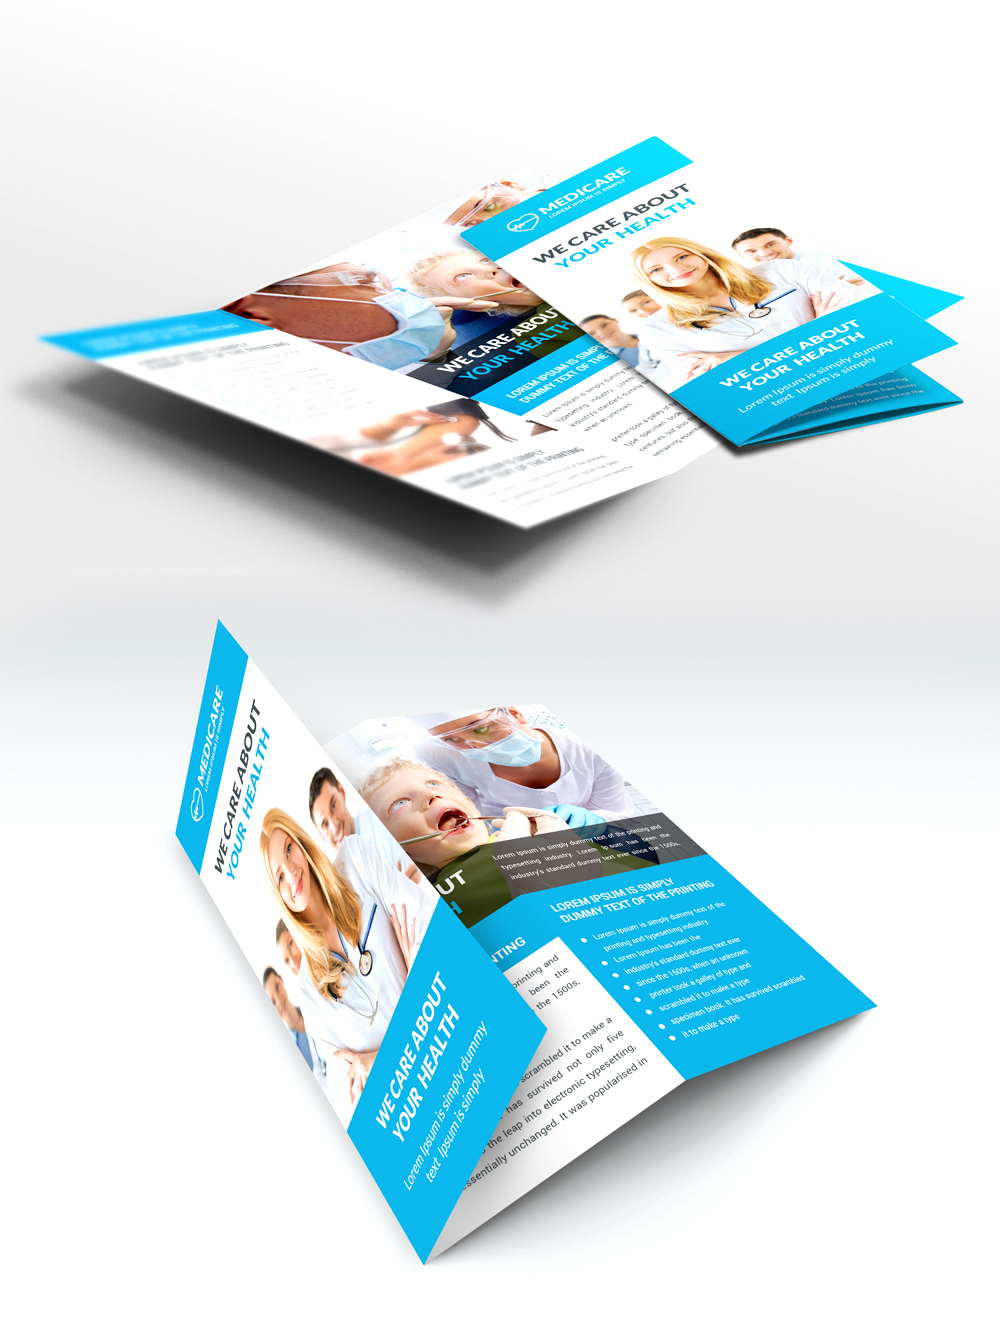 Medical Care And Hospital Trifold Brochure Template Free PSD - Three fold brochure template free download